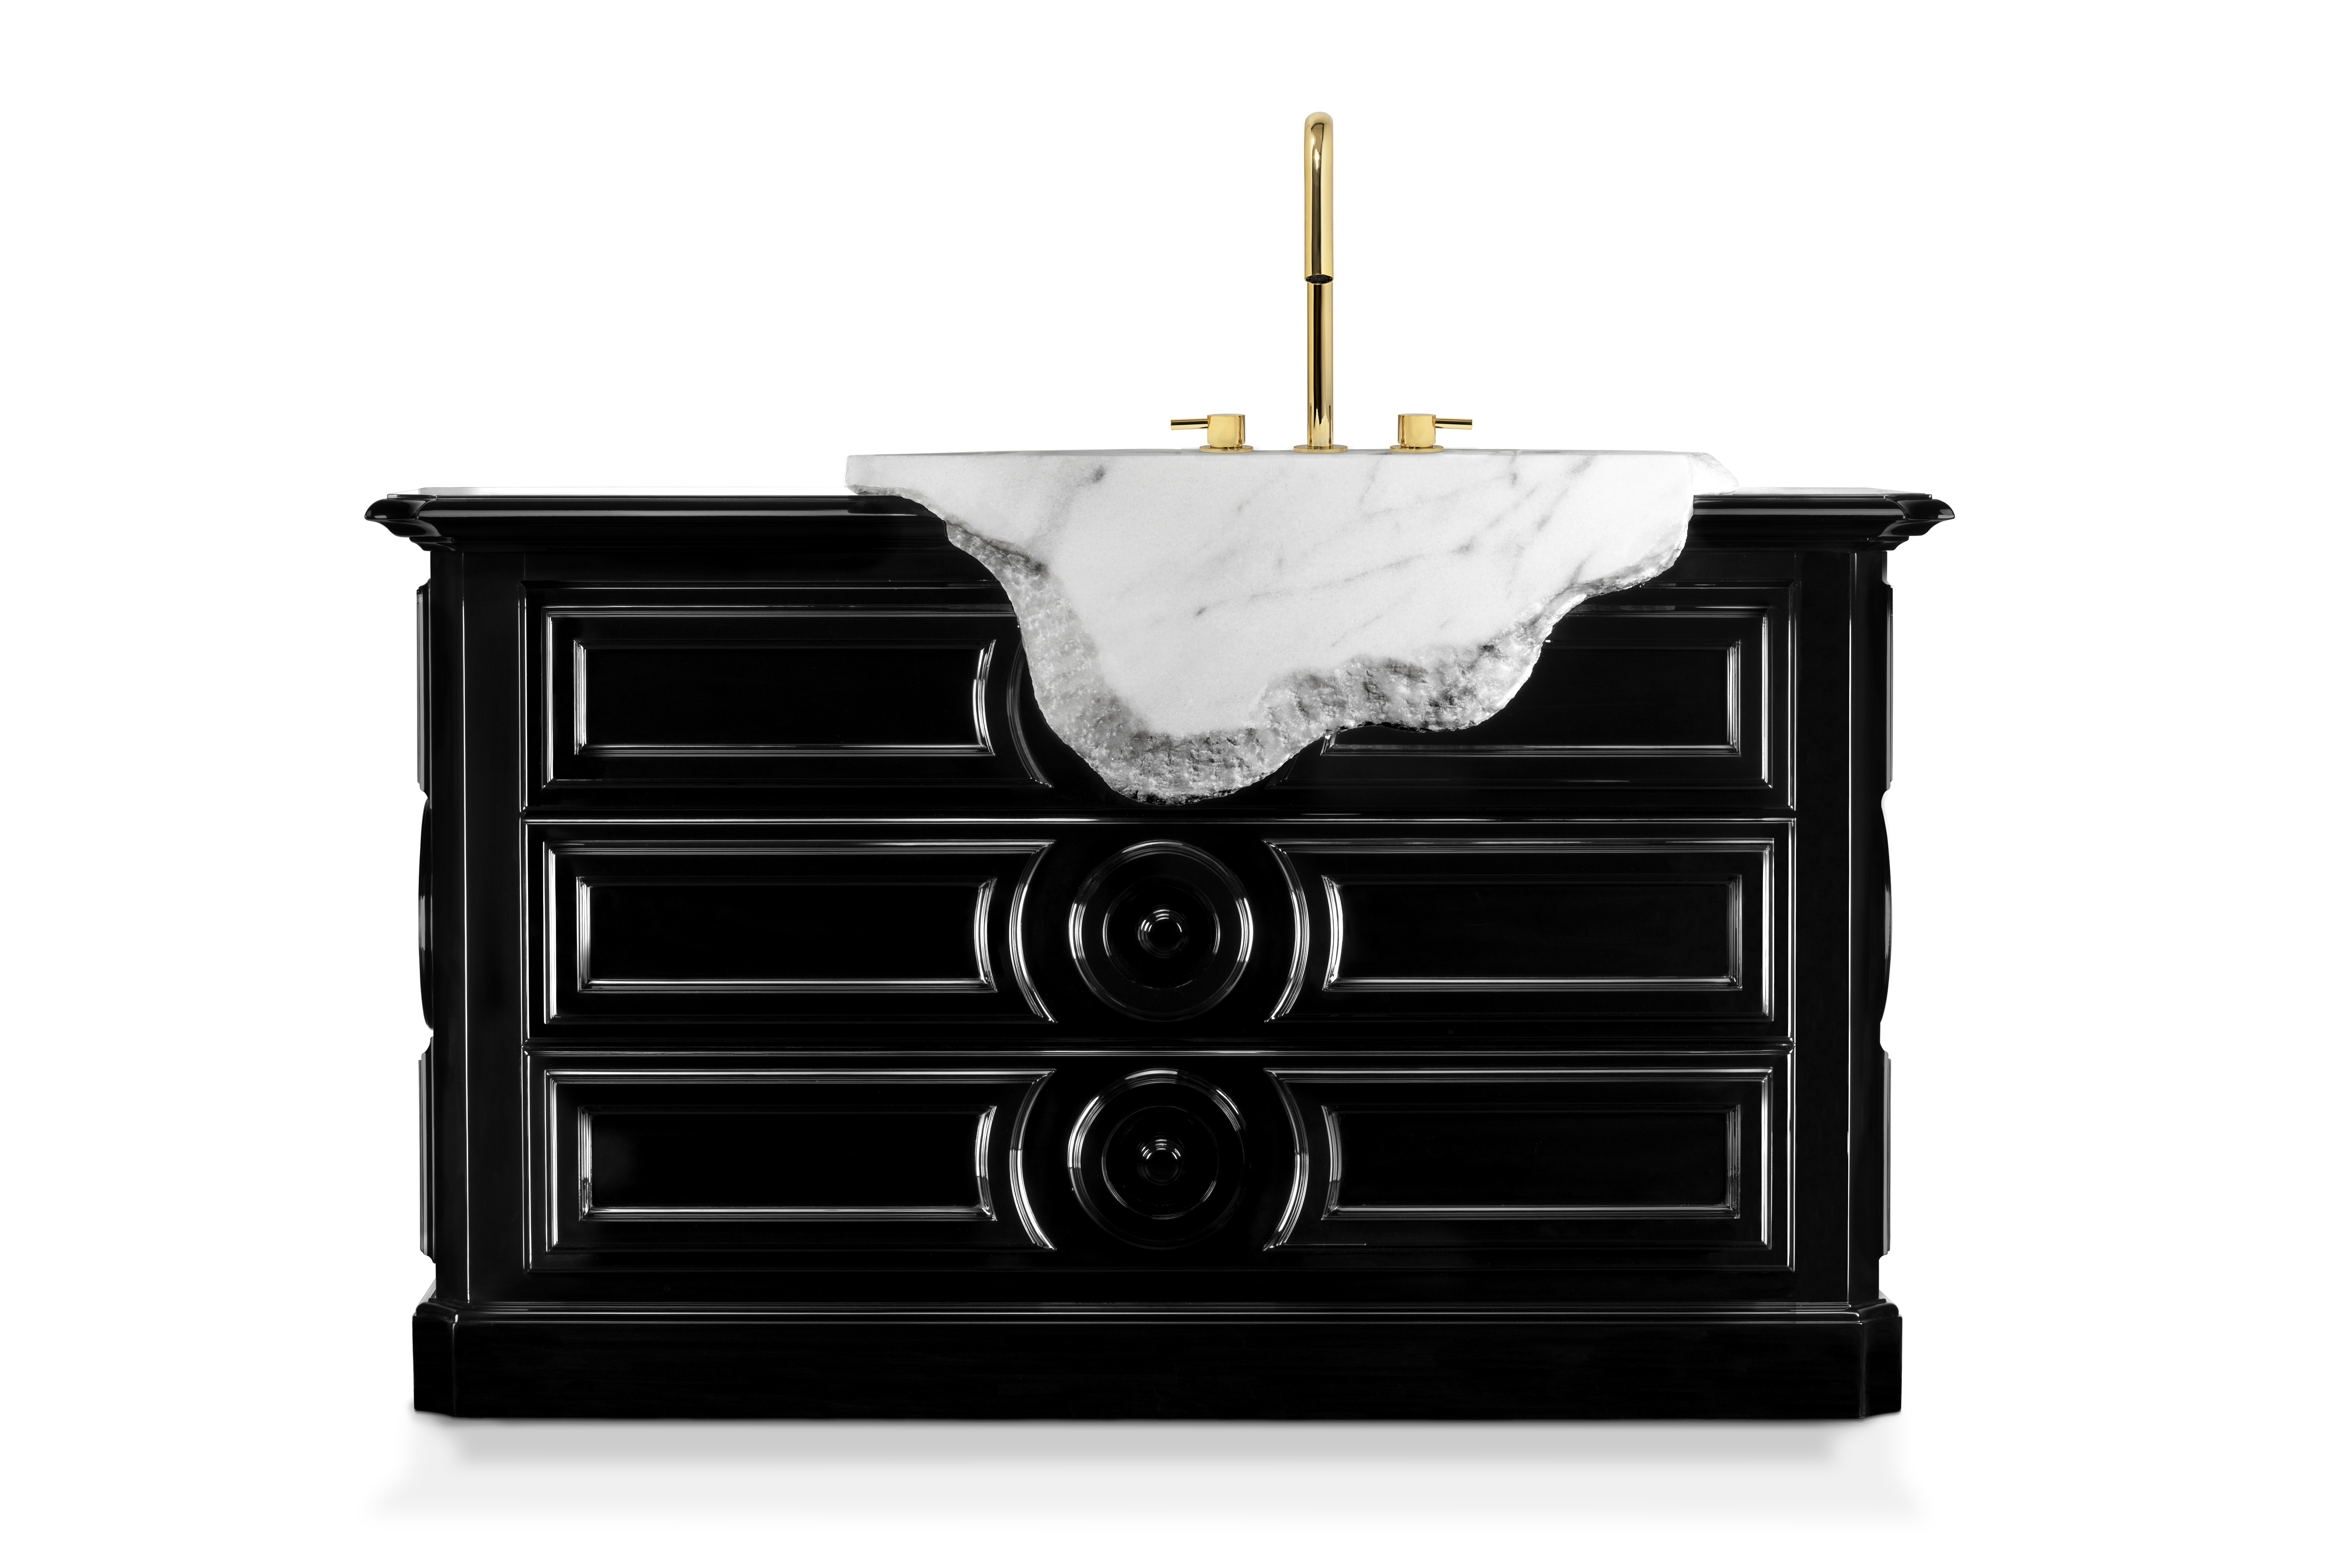 Luxury Washbasins: Products to Elevate your Bathroom Design luxury washbasins Luxury Washbasins: Products to Elevate your Bathroom Design petra washbasin 1 HR